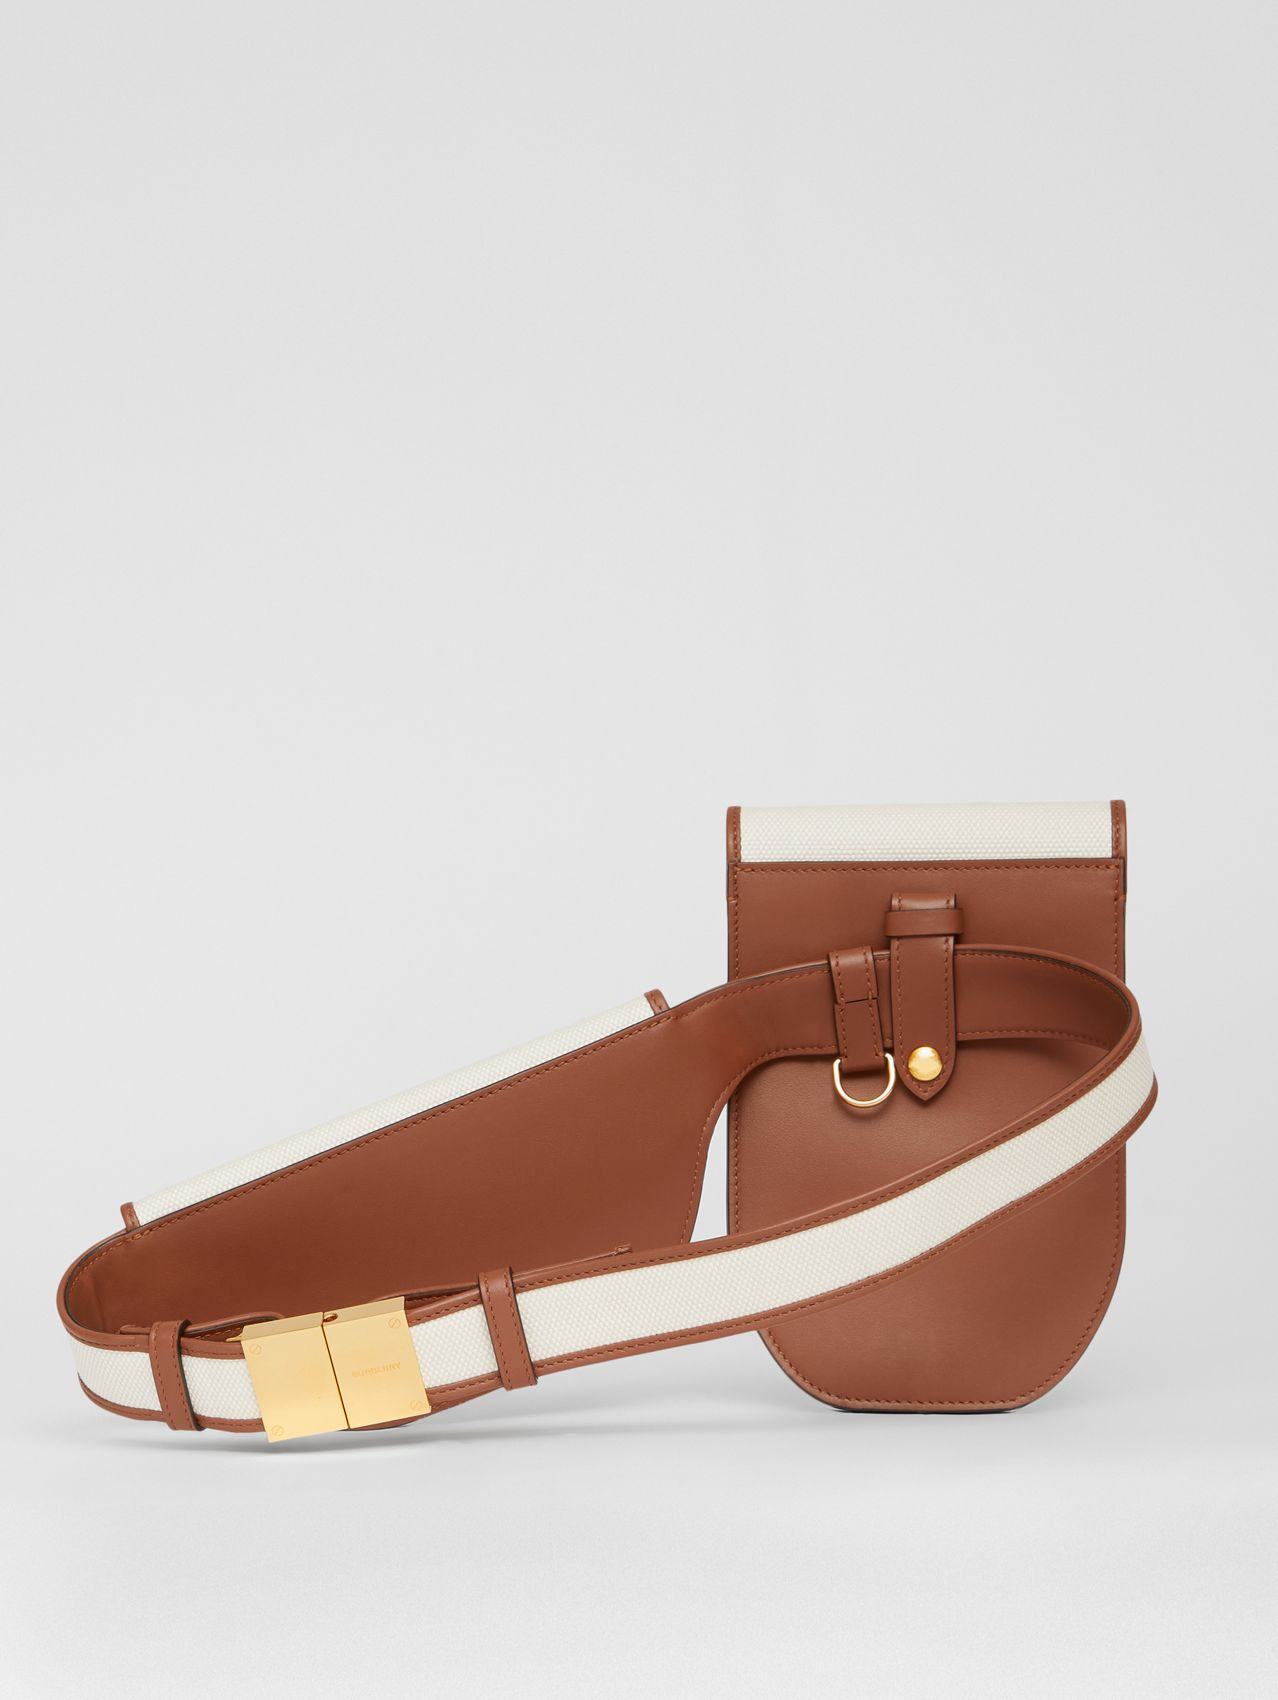 Horseferry Print Canvas and Leather Olympia Belt Bag in Natural/tan